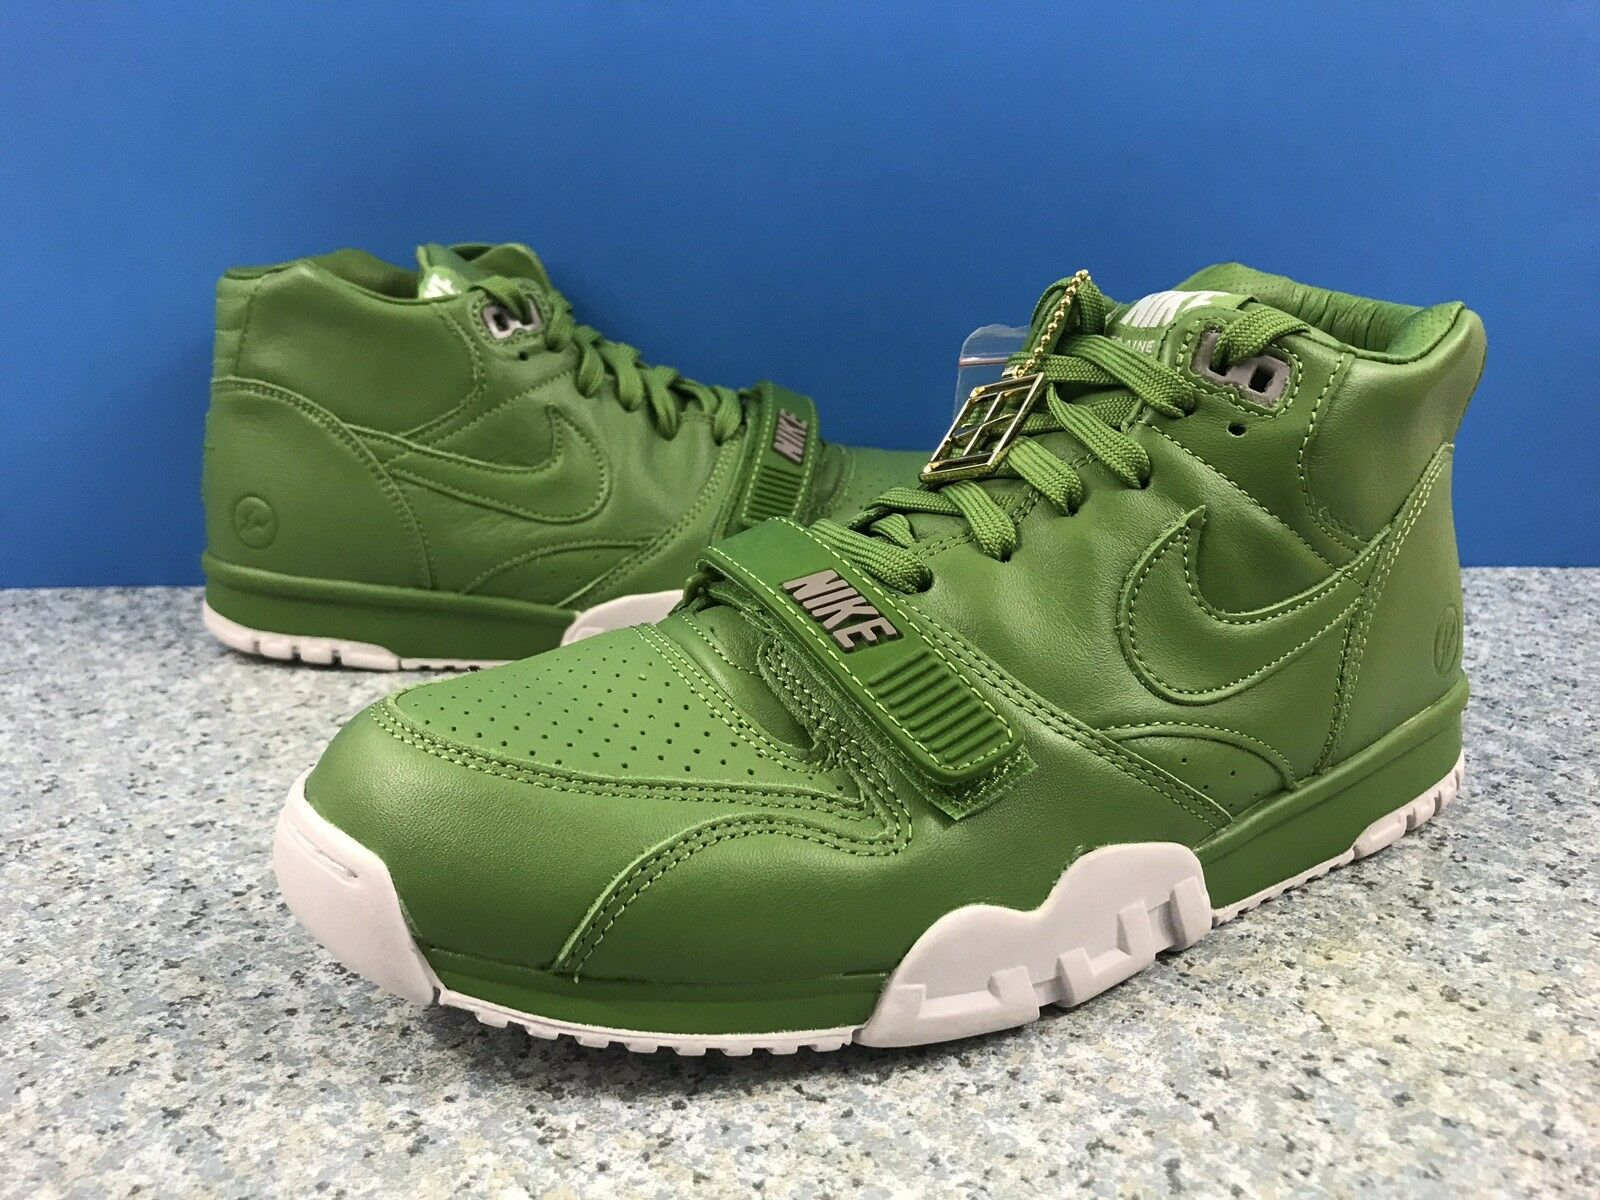 49adf4193d0 Nike Trainer 1 Mid SP Fragment 806942-331 Chlgoldphyll Wimbledon Sz 10  Green Air nqlonu4704-Athletic Shoes